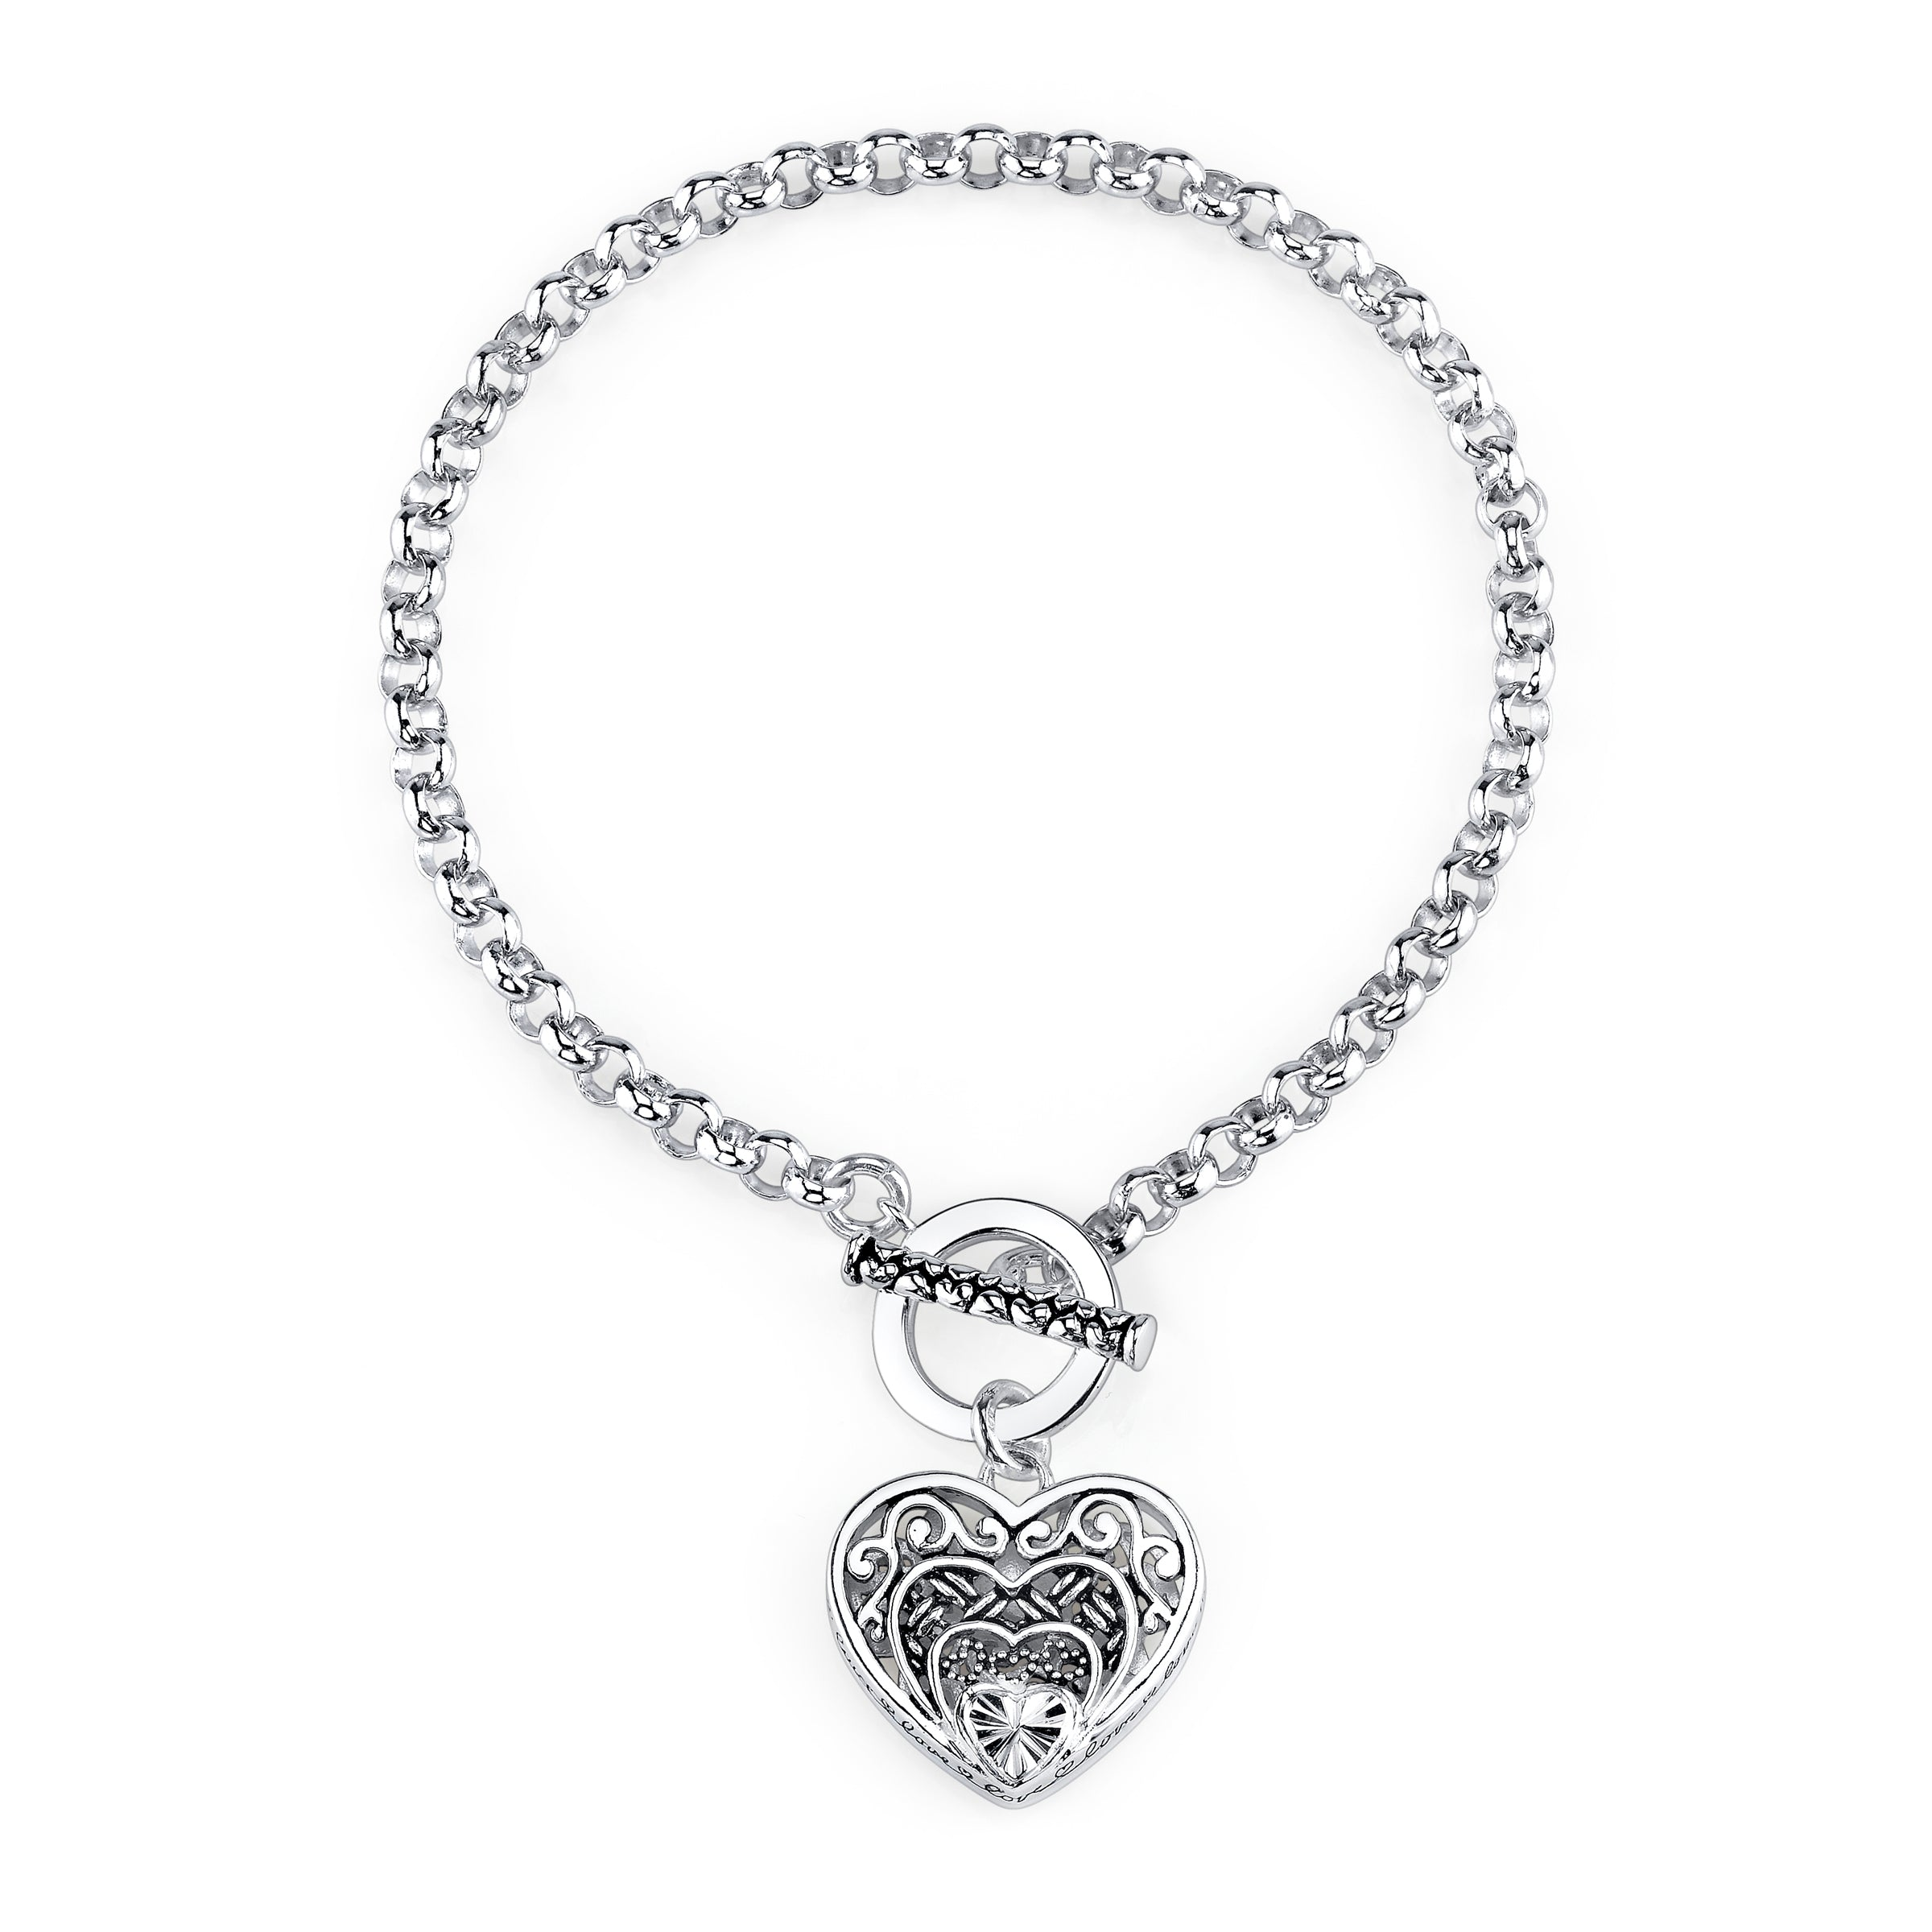 Textured Heart Charm Bracelet, Sterling Silver